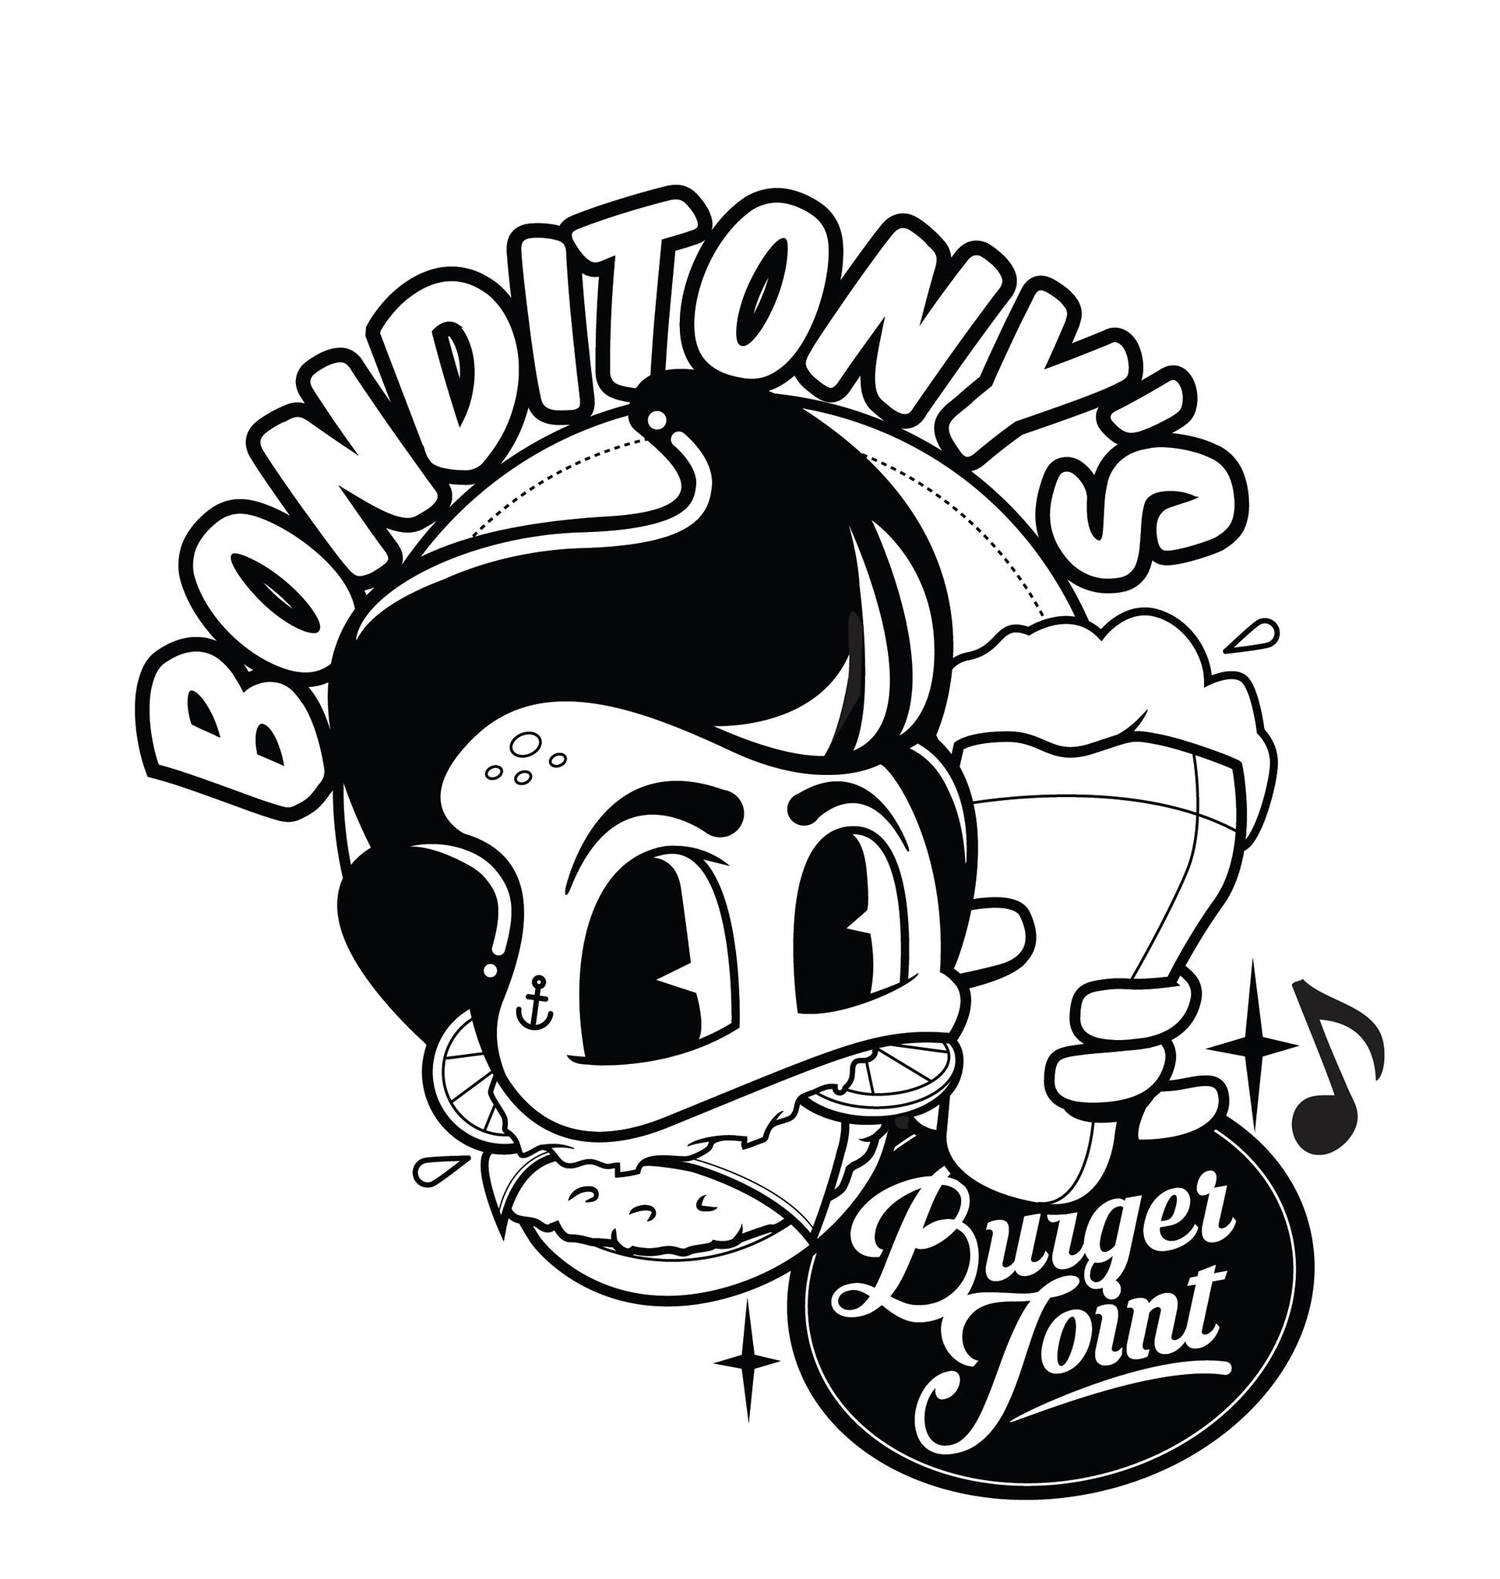 Bonditony's Burger Joint